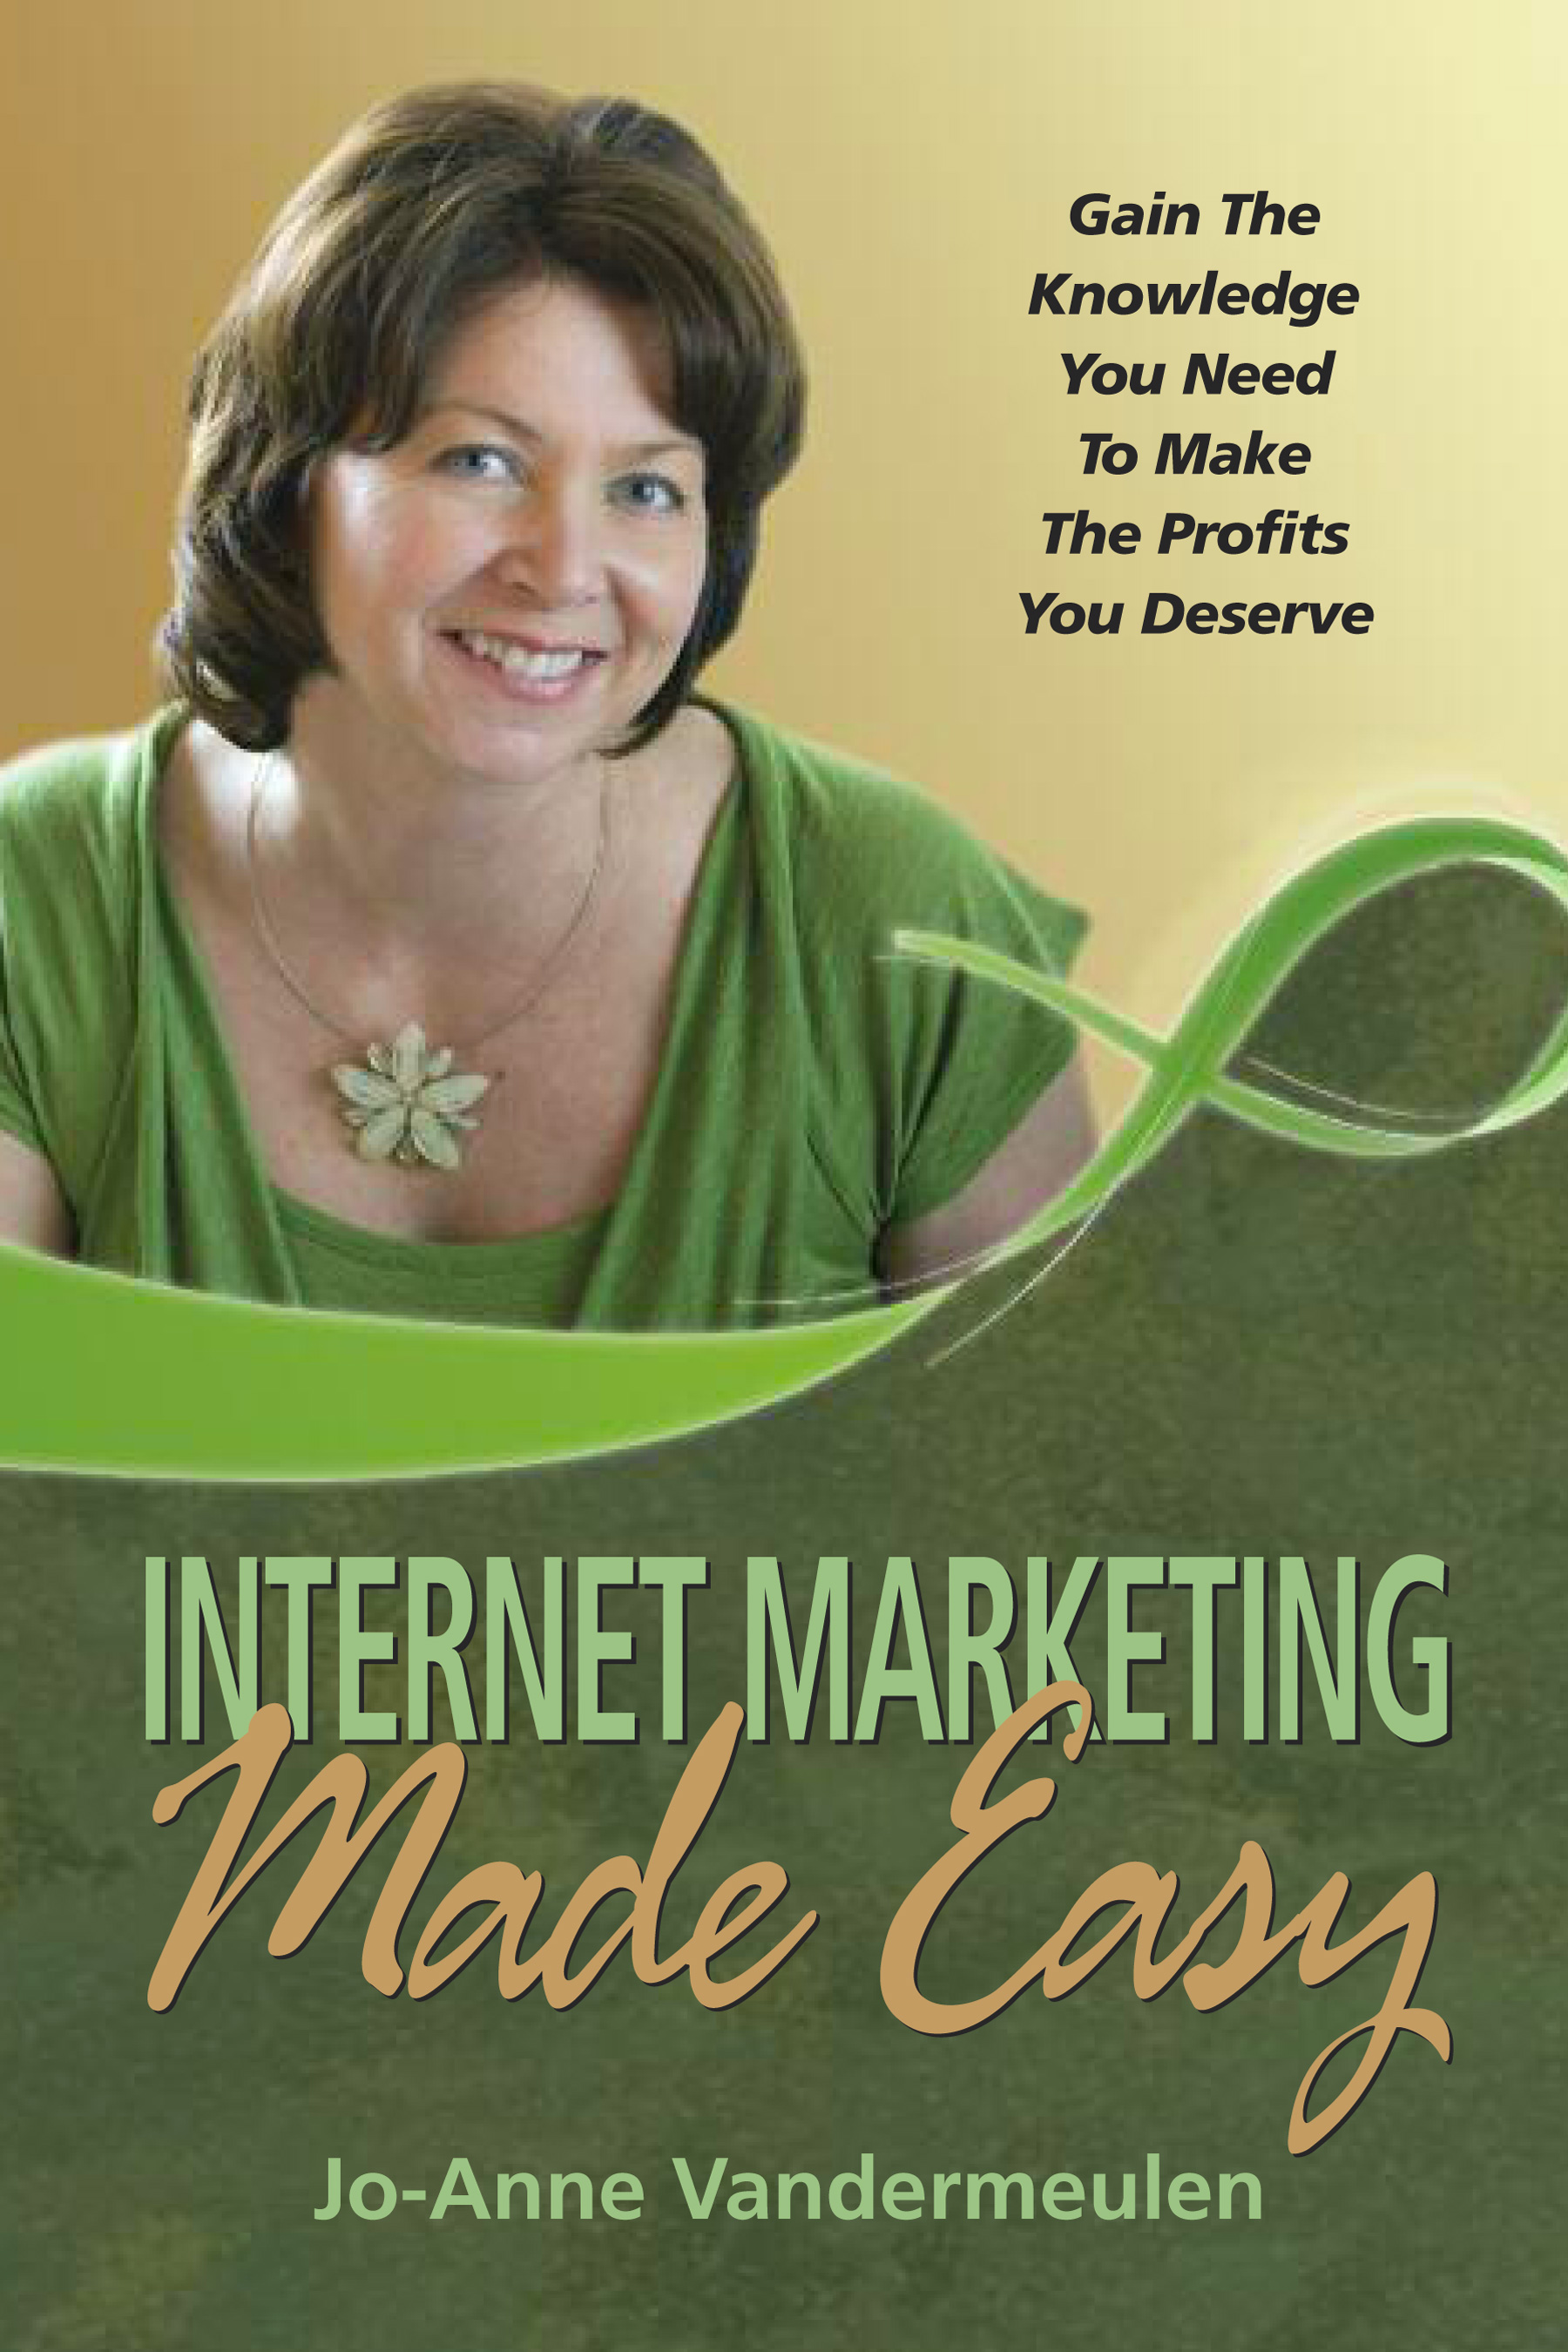 Internet Marketing Made Easy